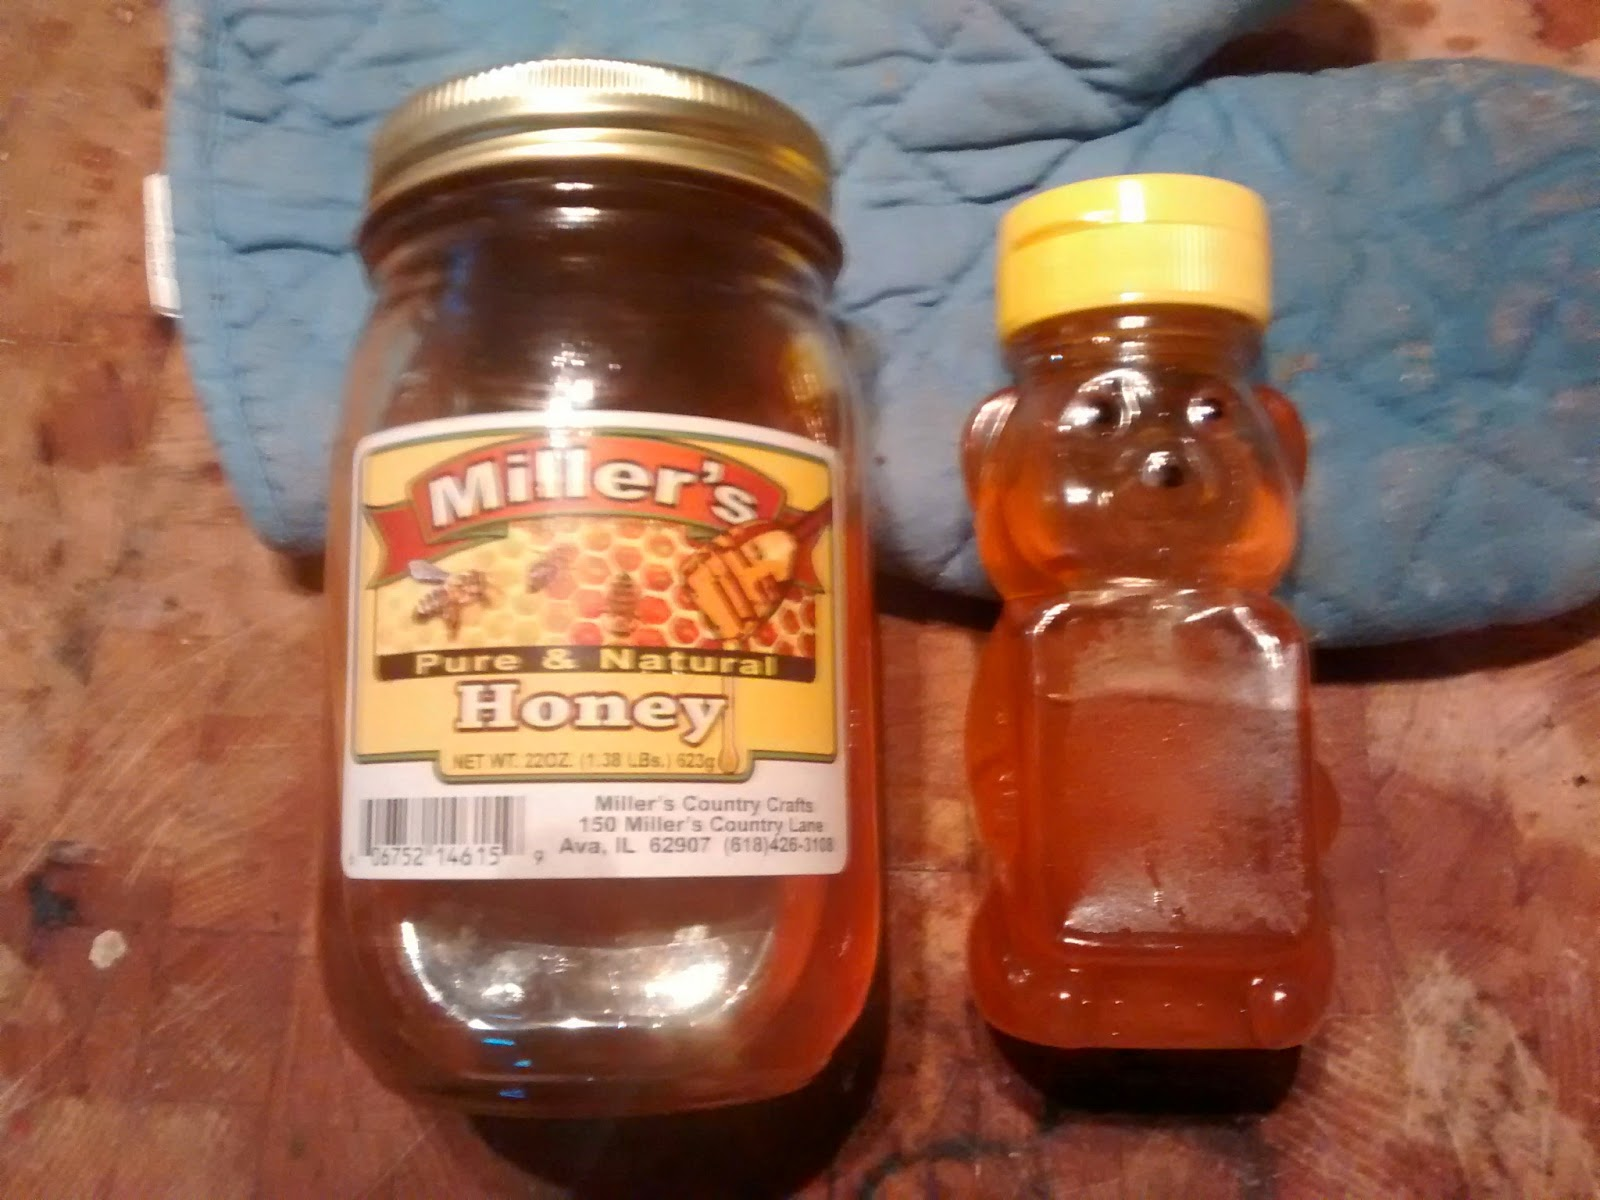 Substitute or Recycle Clarks Honey Farm Inc manmade Honey Bear Bottle with 100% Natural Honey I used Millers